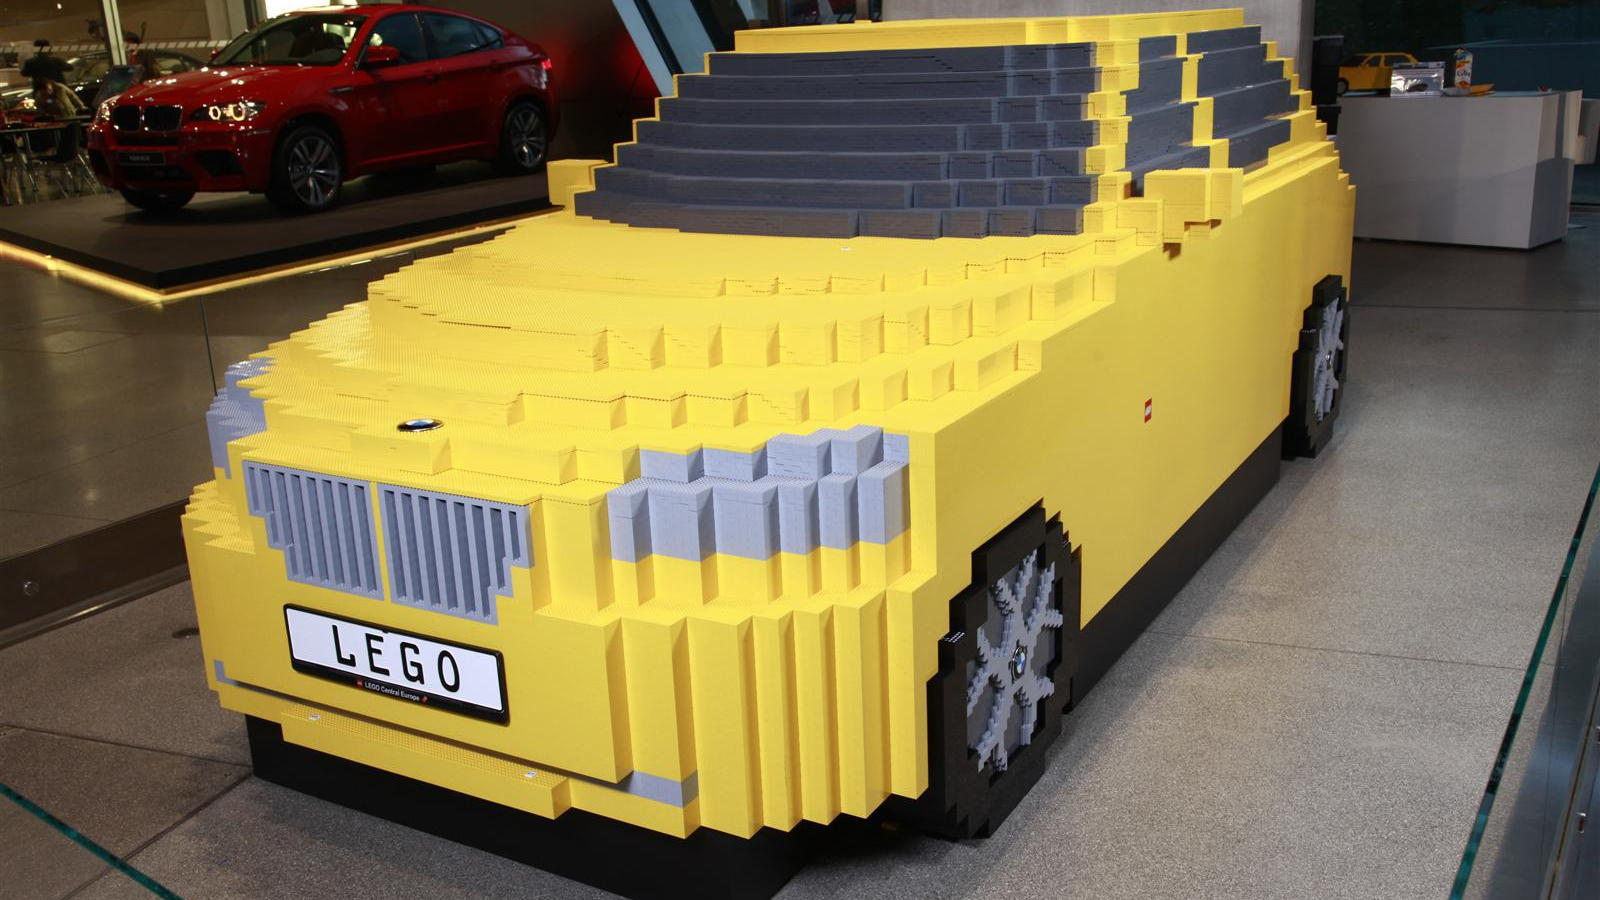 BMW X1 LEGO Sculpture